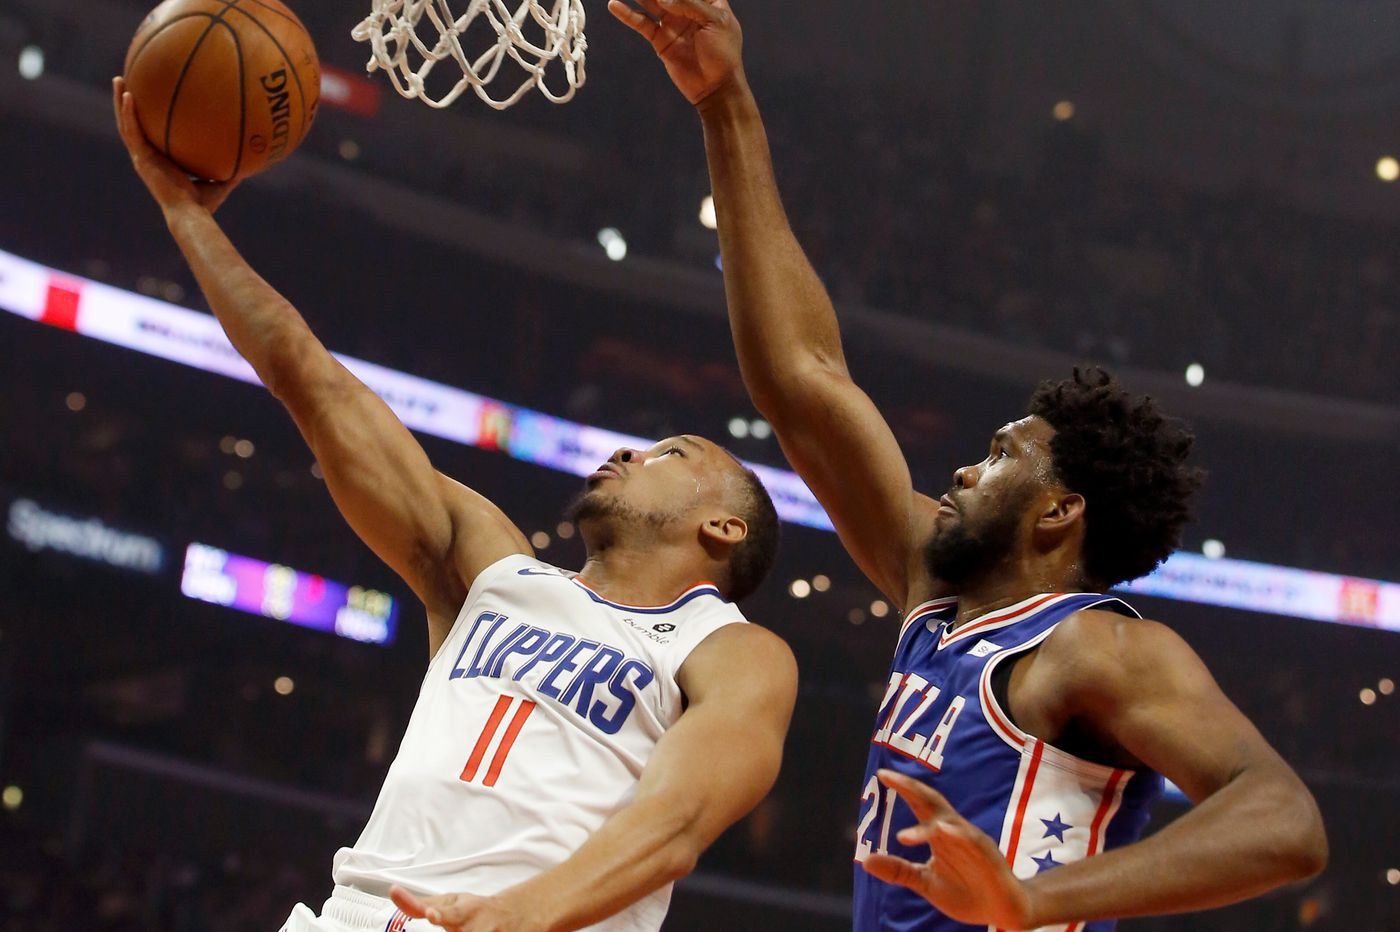 b4bec91ea156 Sixers hold on to beat Clippers as Joel Embiid finishes with 28 points